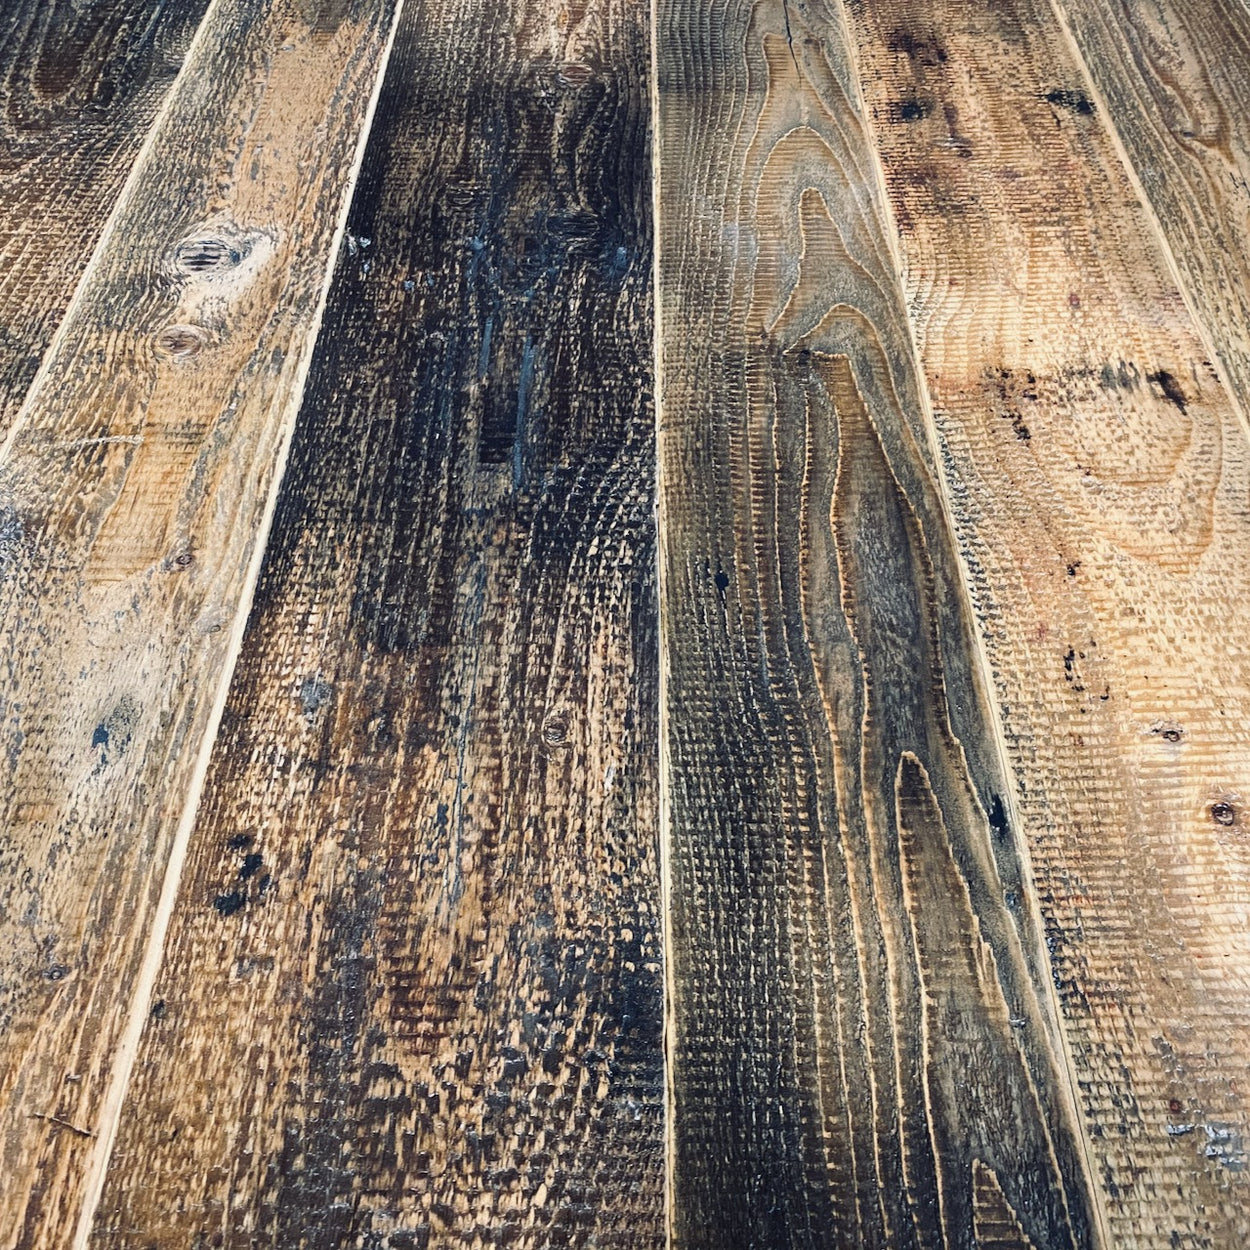 Sample of Industrial Floorboards